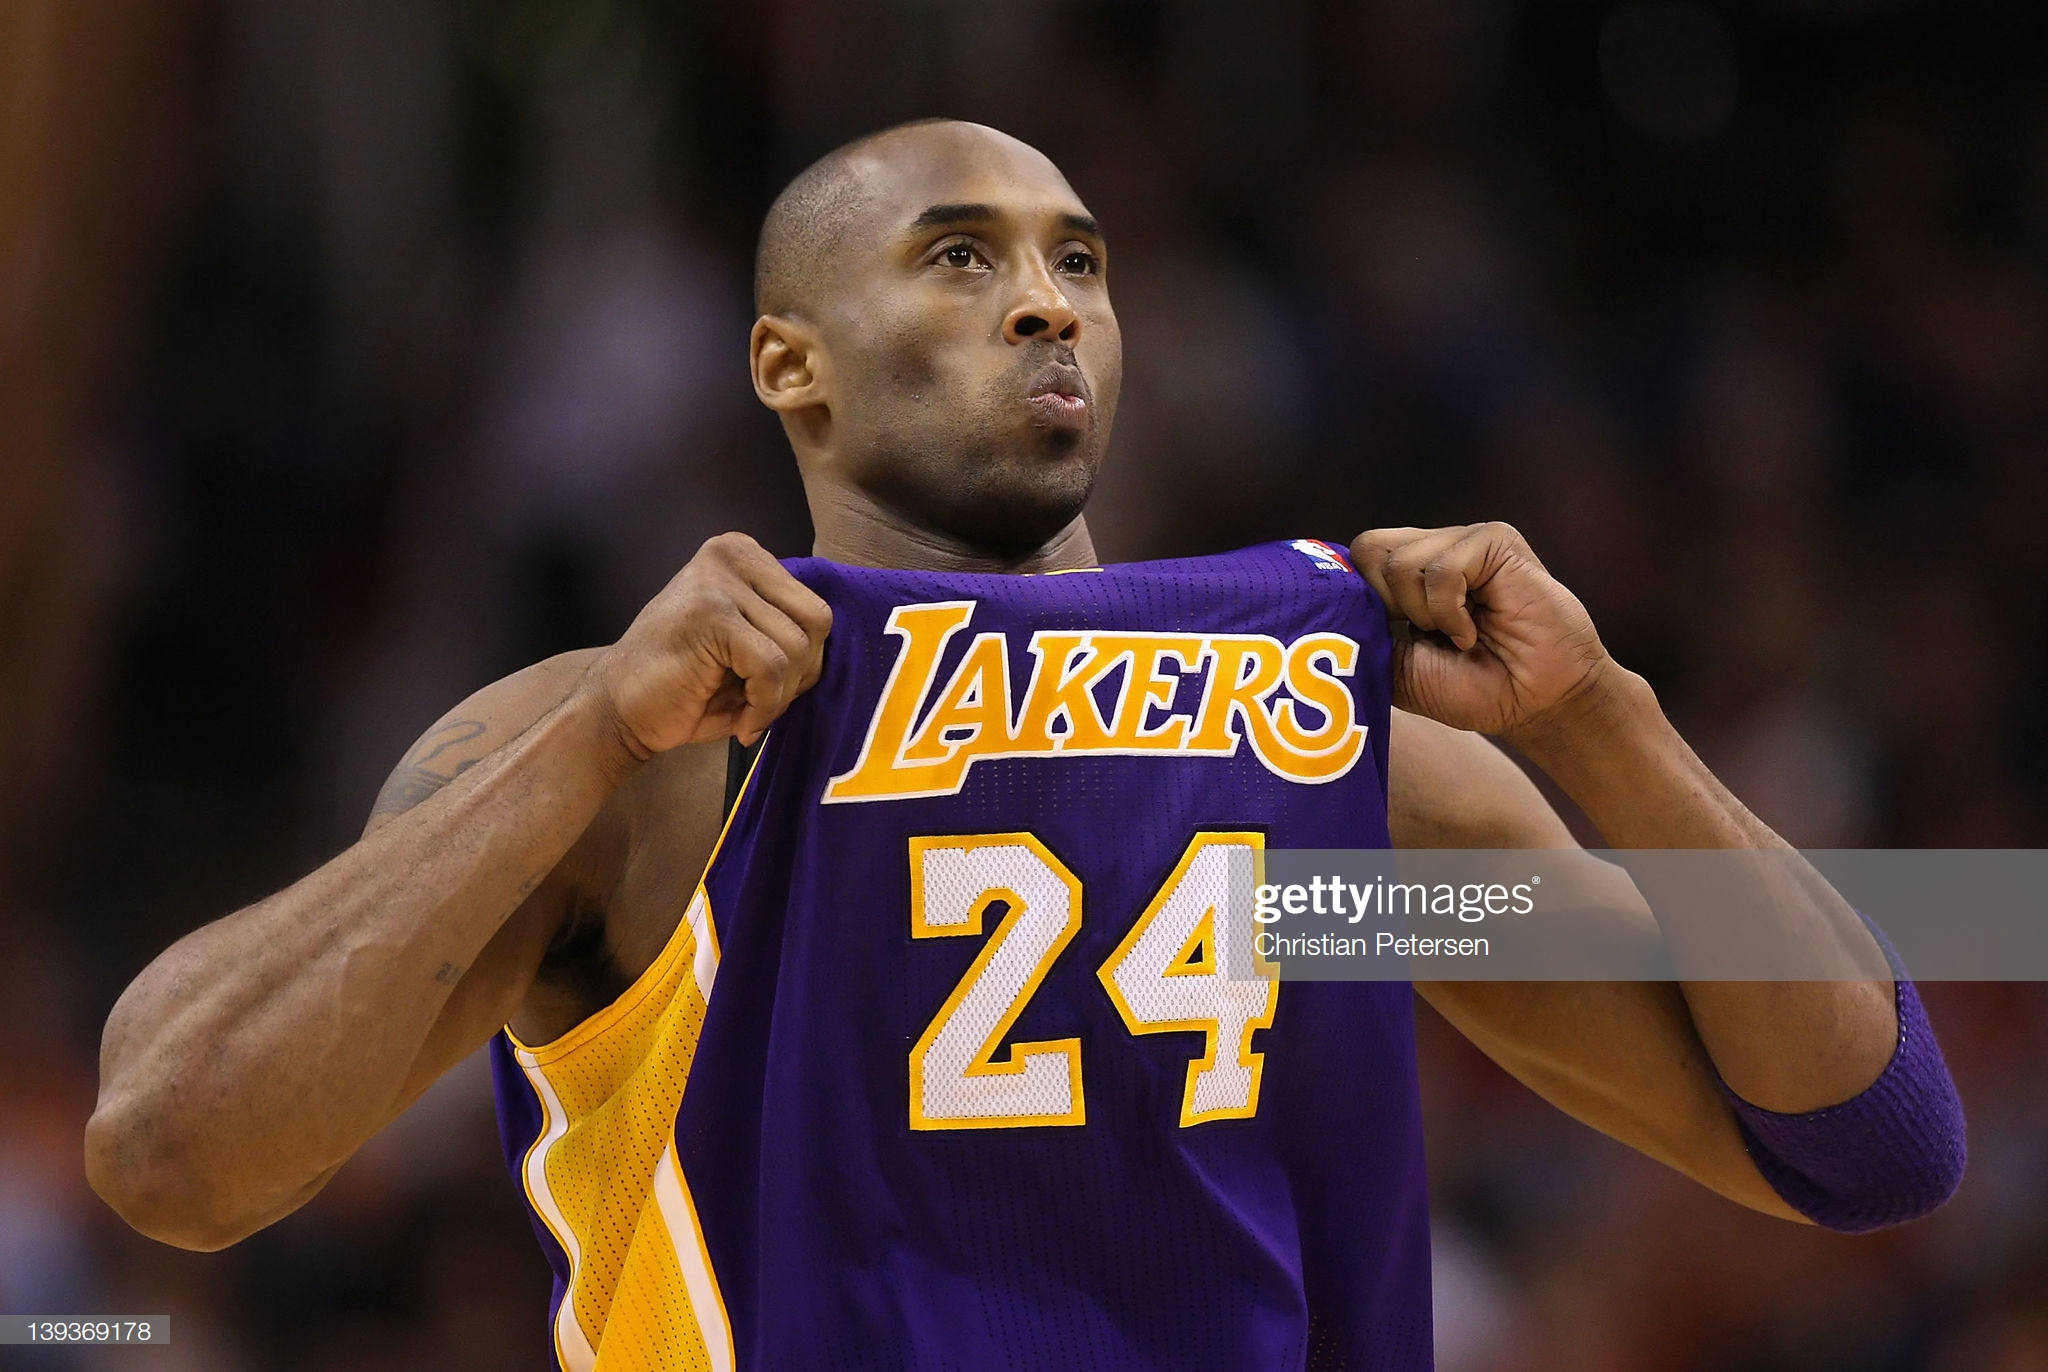 Swan Song Of The Black Mamba